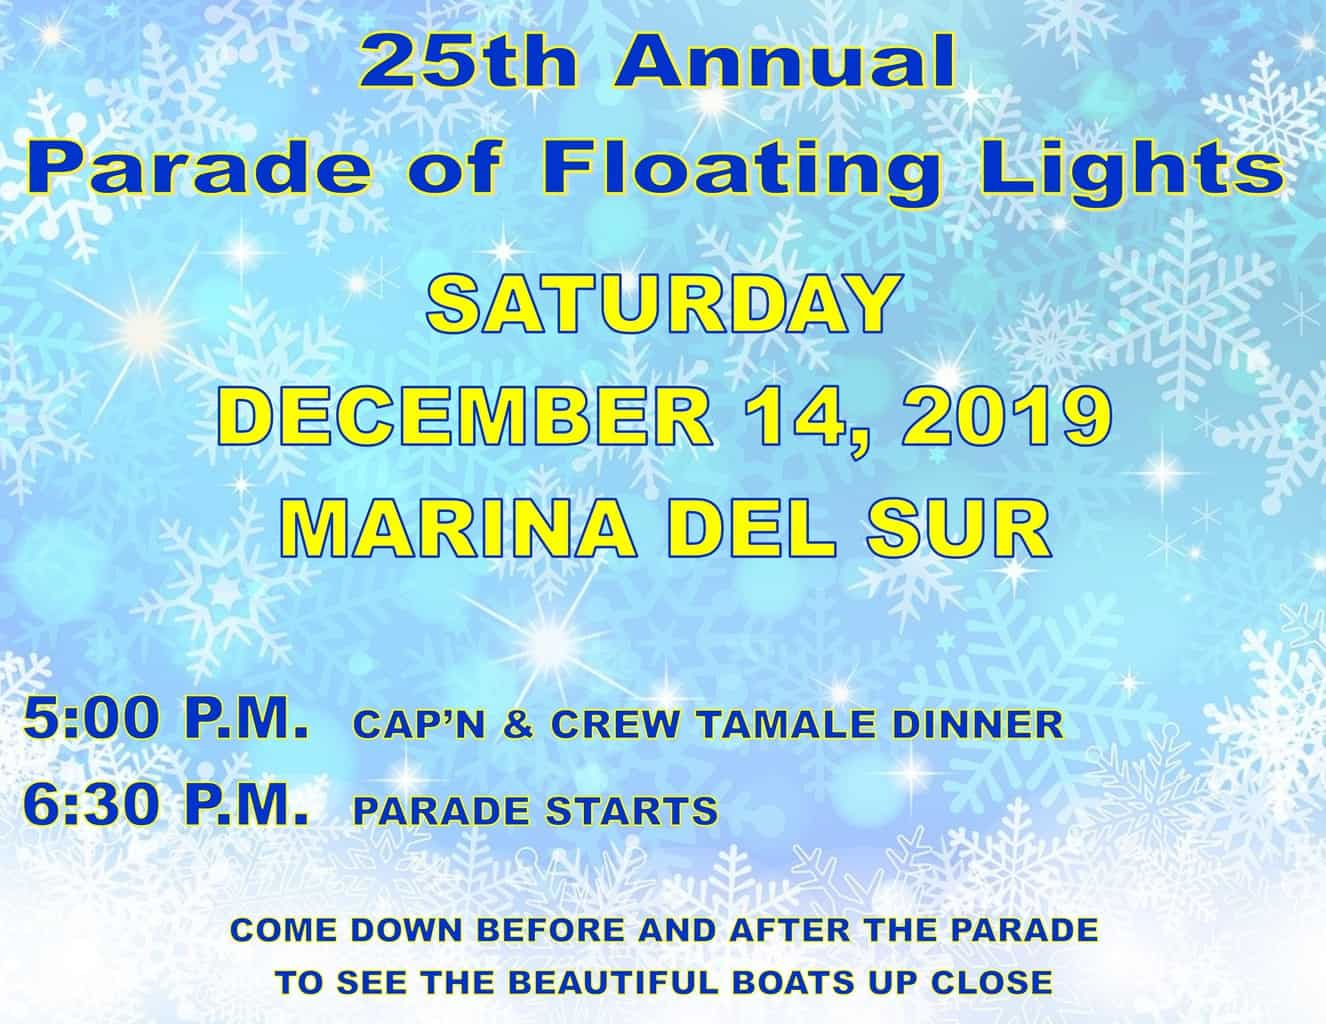 25th Annual Parade of Floating Lights